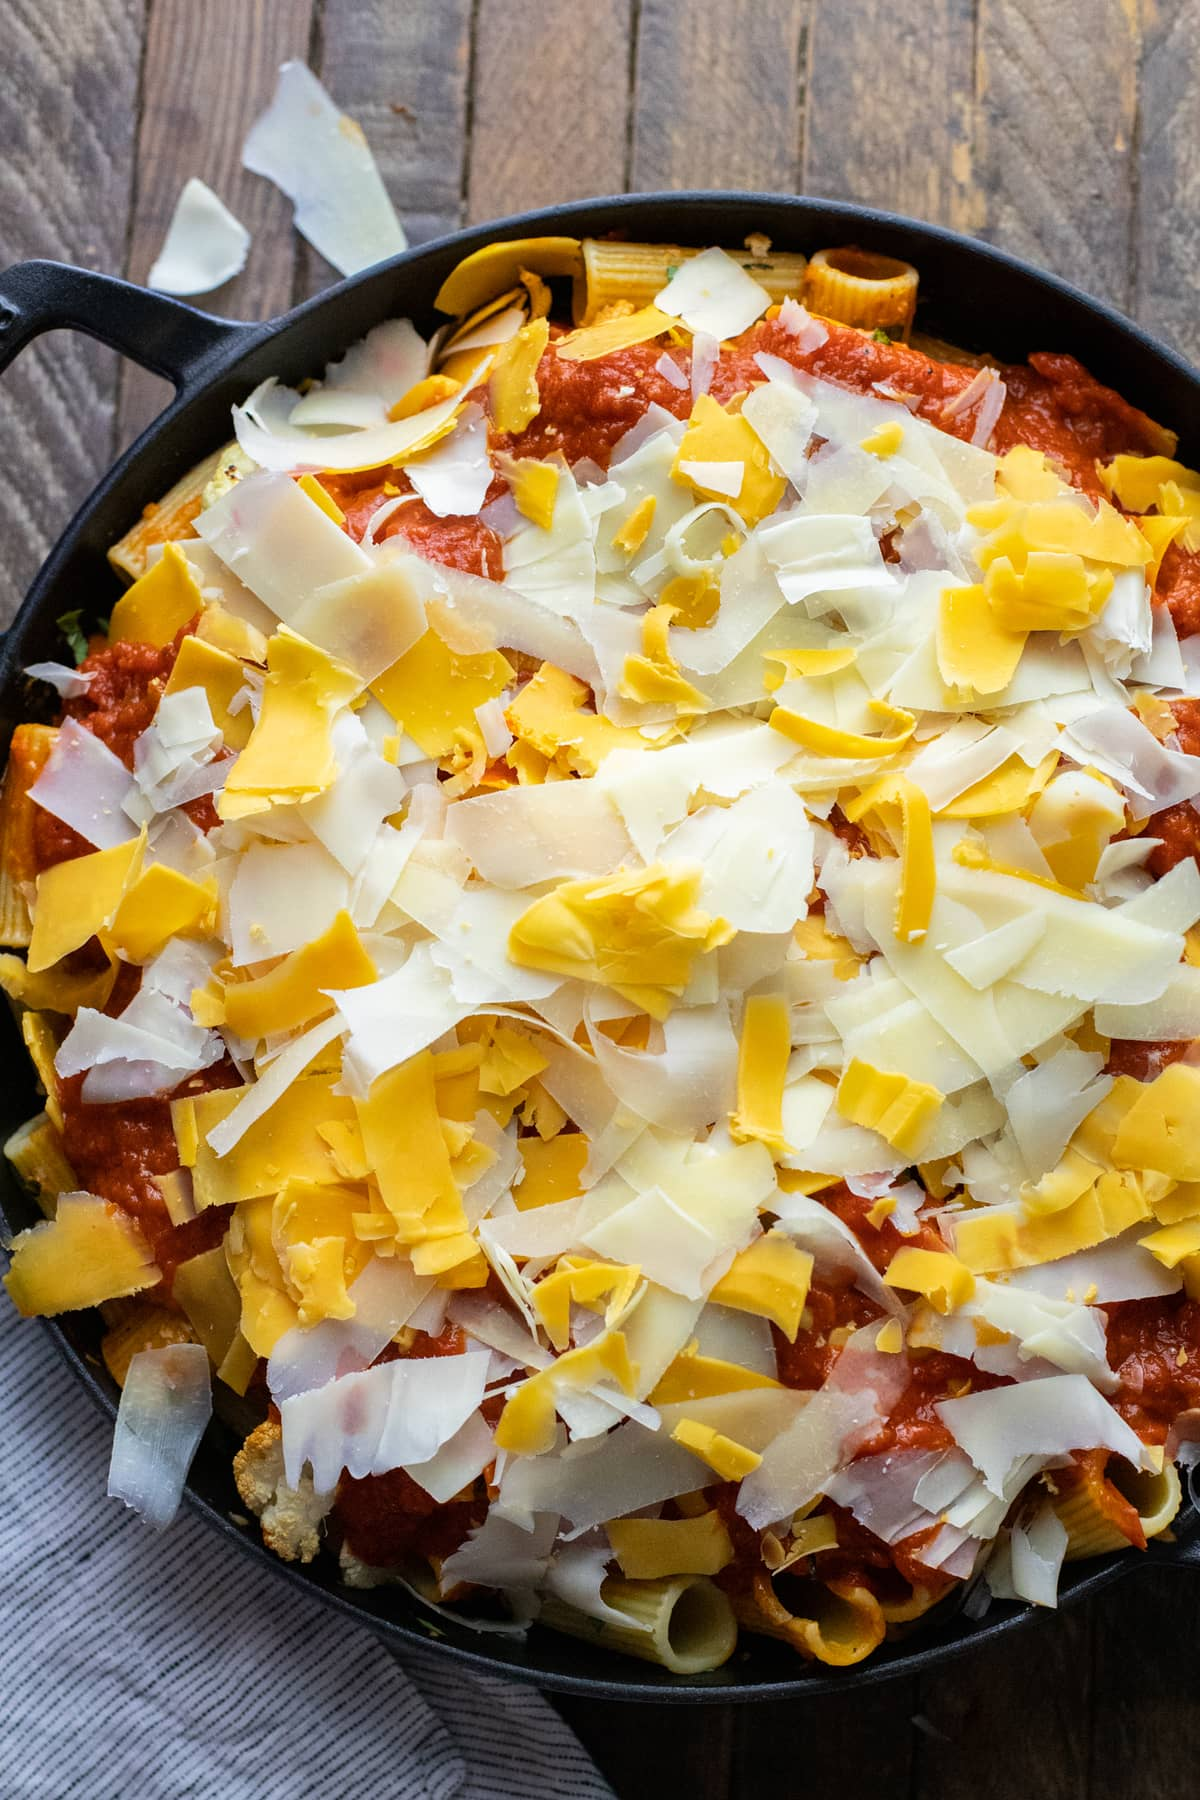 black cast iron pot with baked rigatoni and shredded cheese over top.